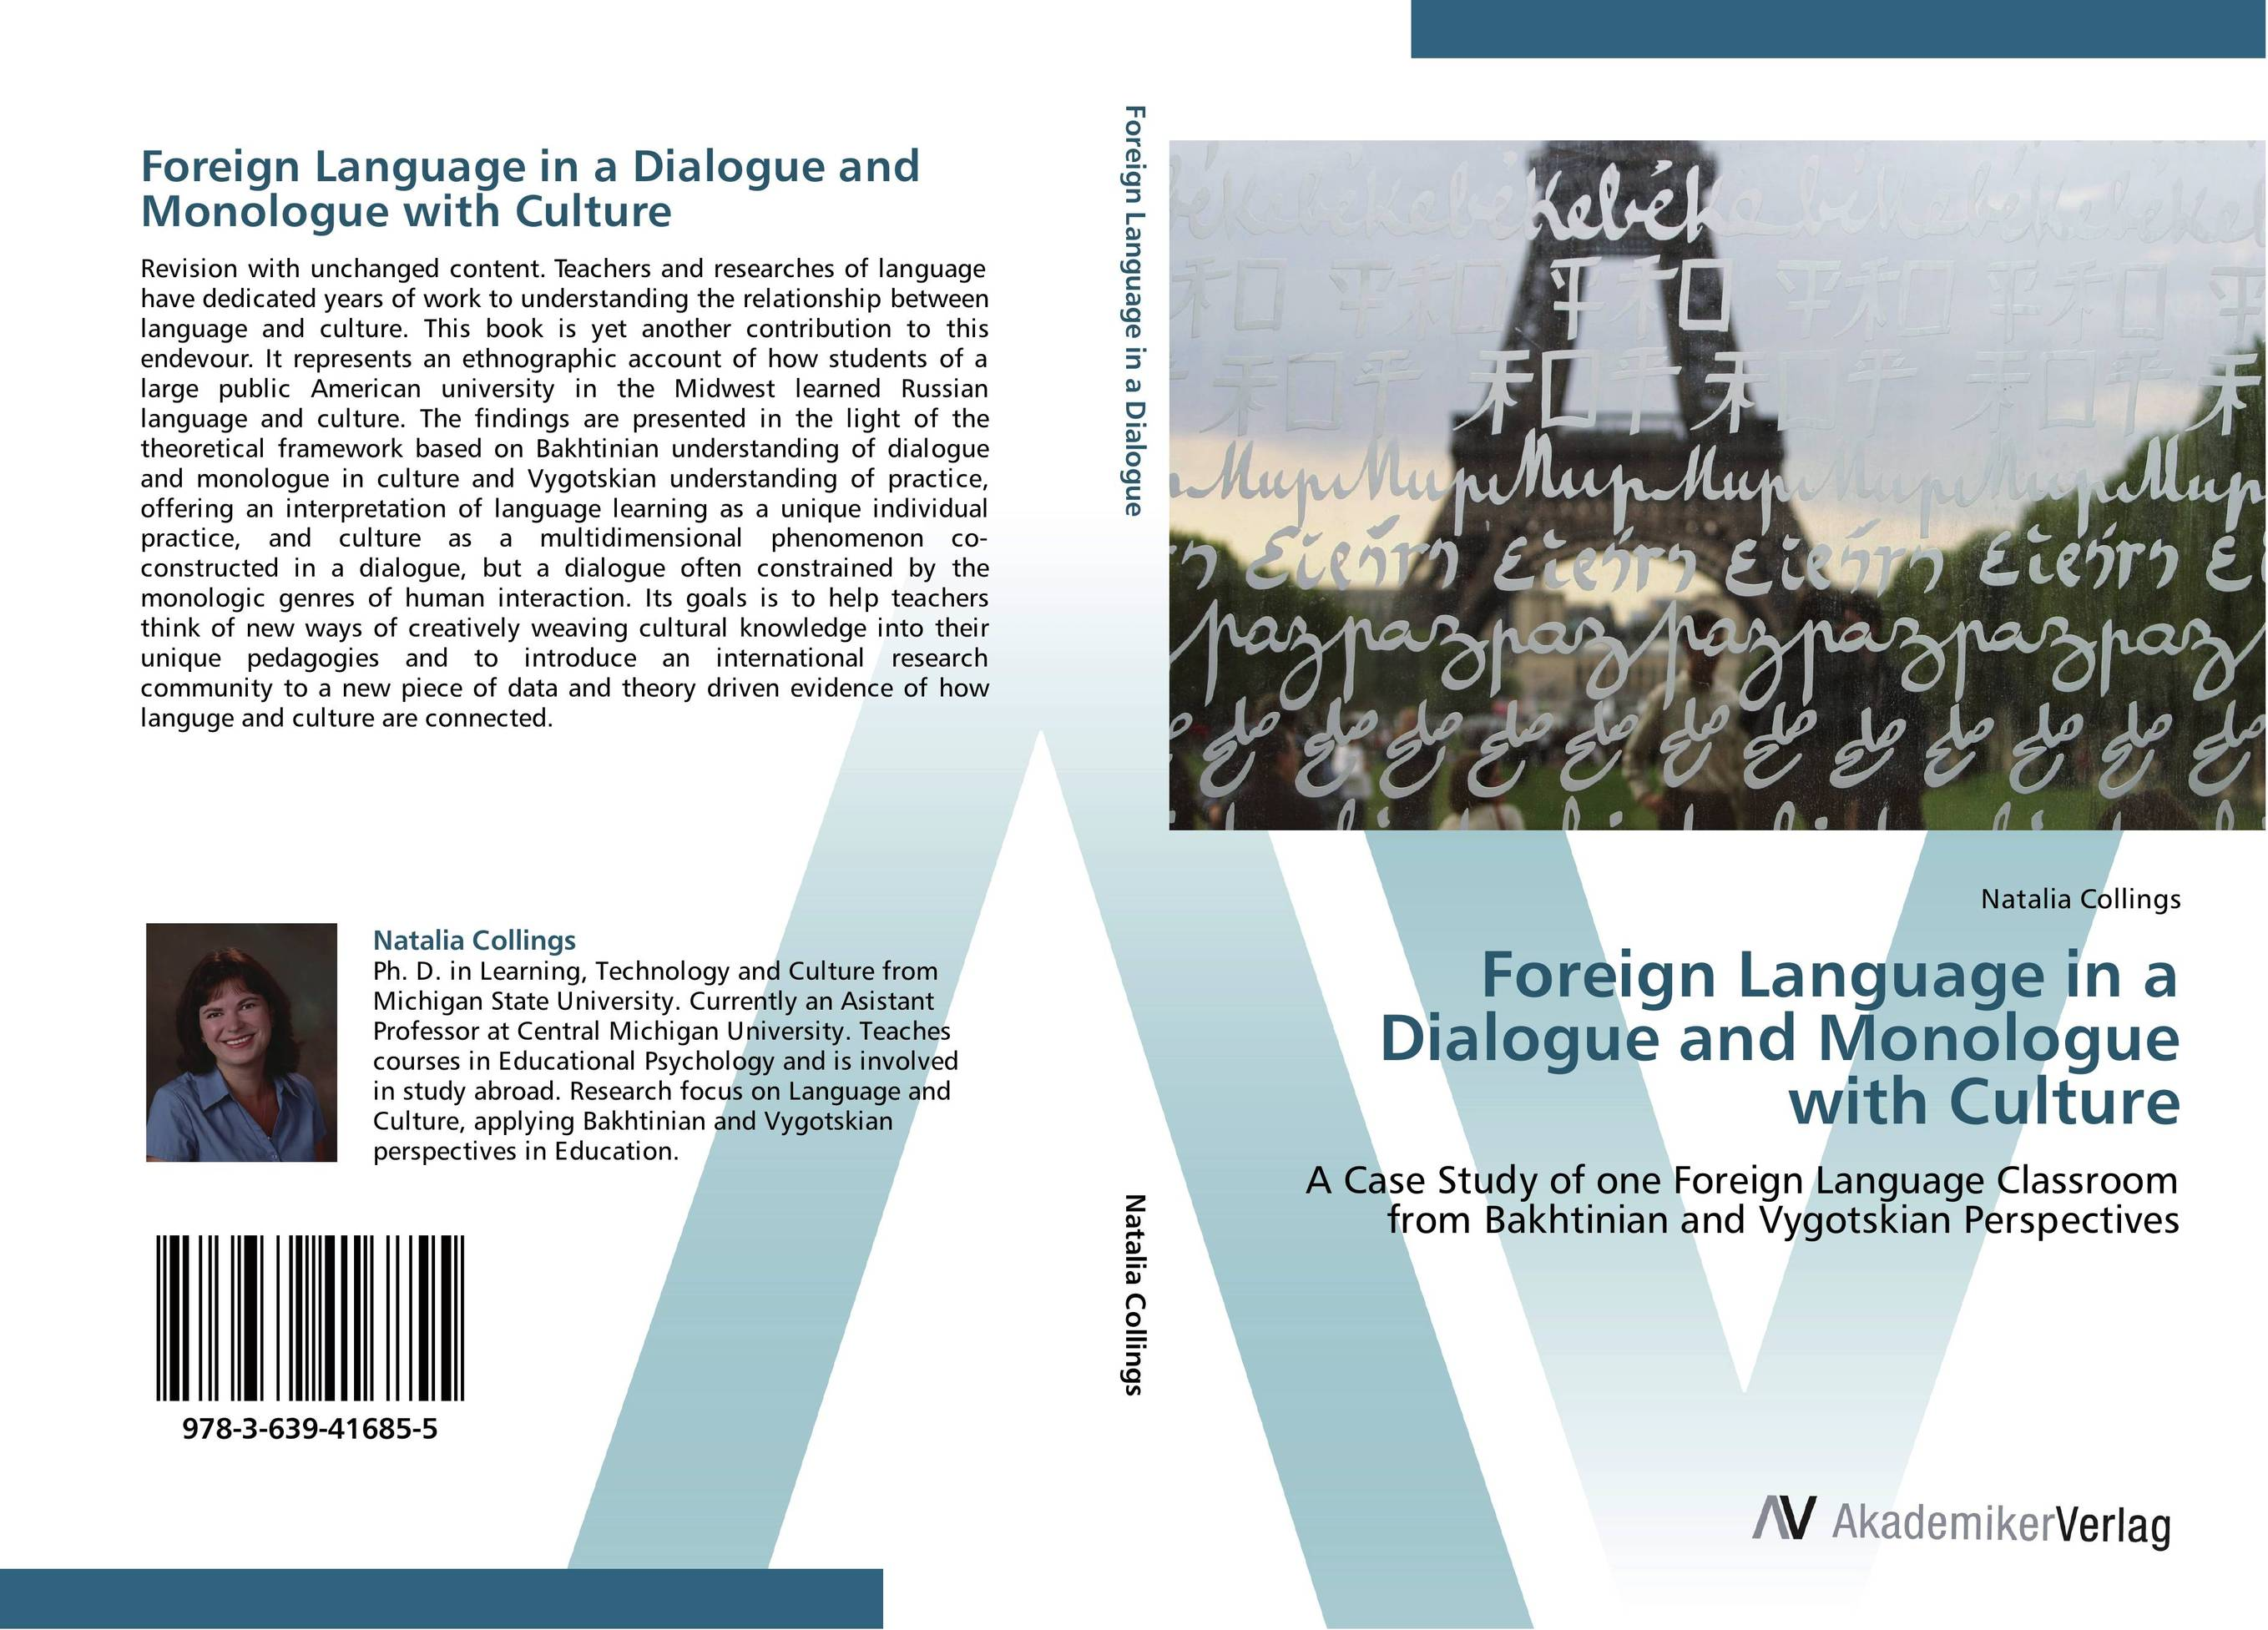 Foreign Language in a Dialogue and Monologue with Culture early signs of language shifting